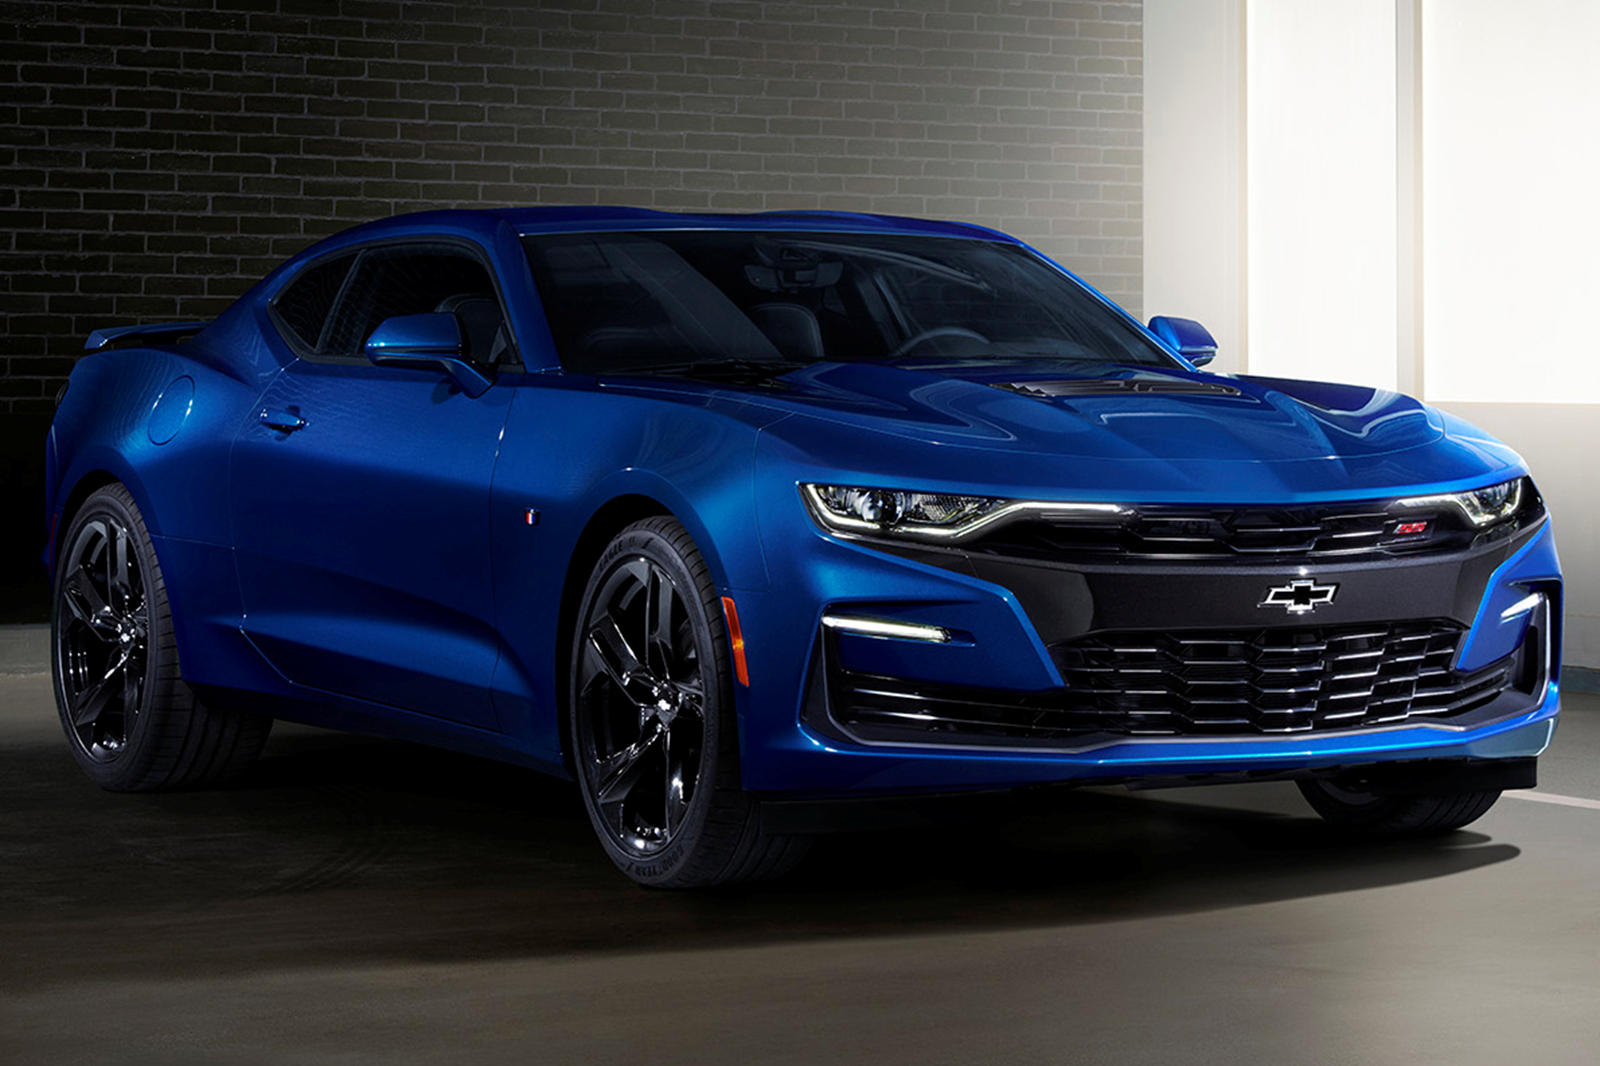 2020 Chevrolet Camaro New Chevy Camaro Models Reviews Price Specs Trims New Interior Features Exterior Design And Specifications Carbuzz